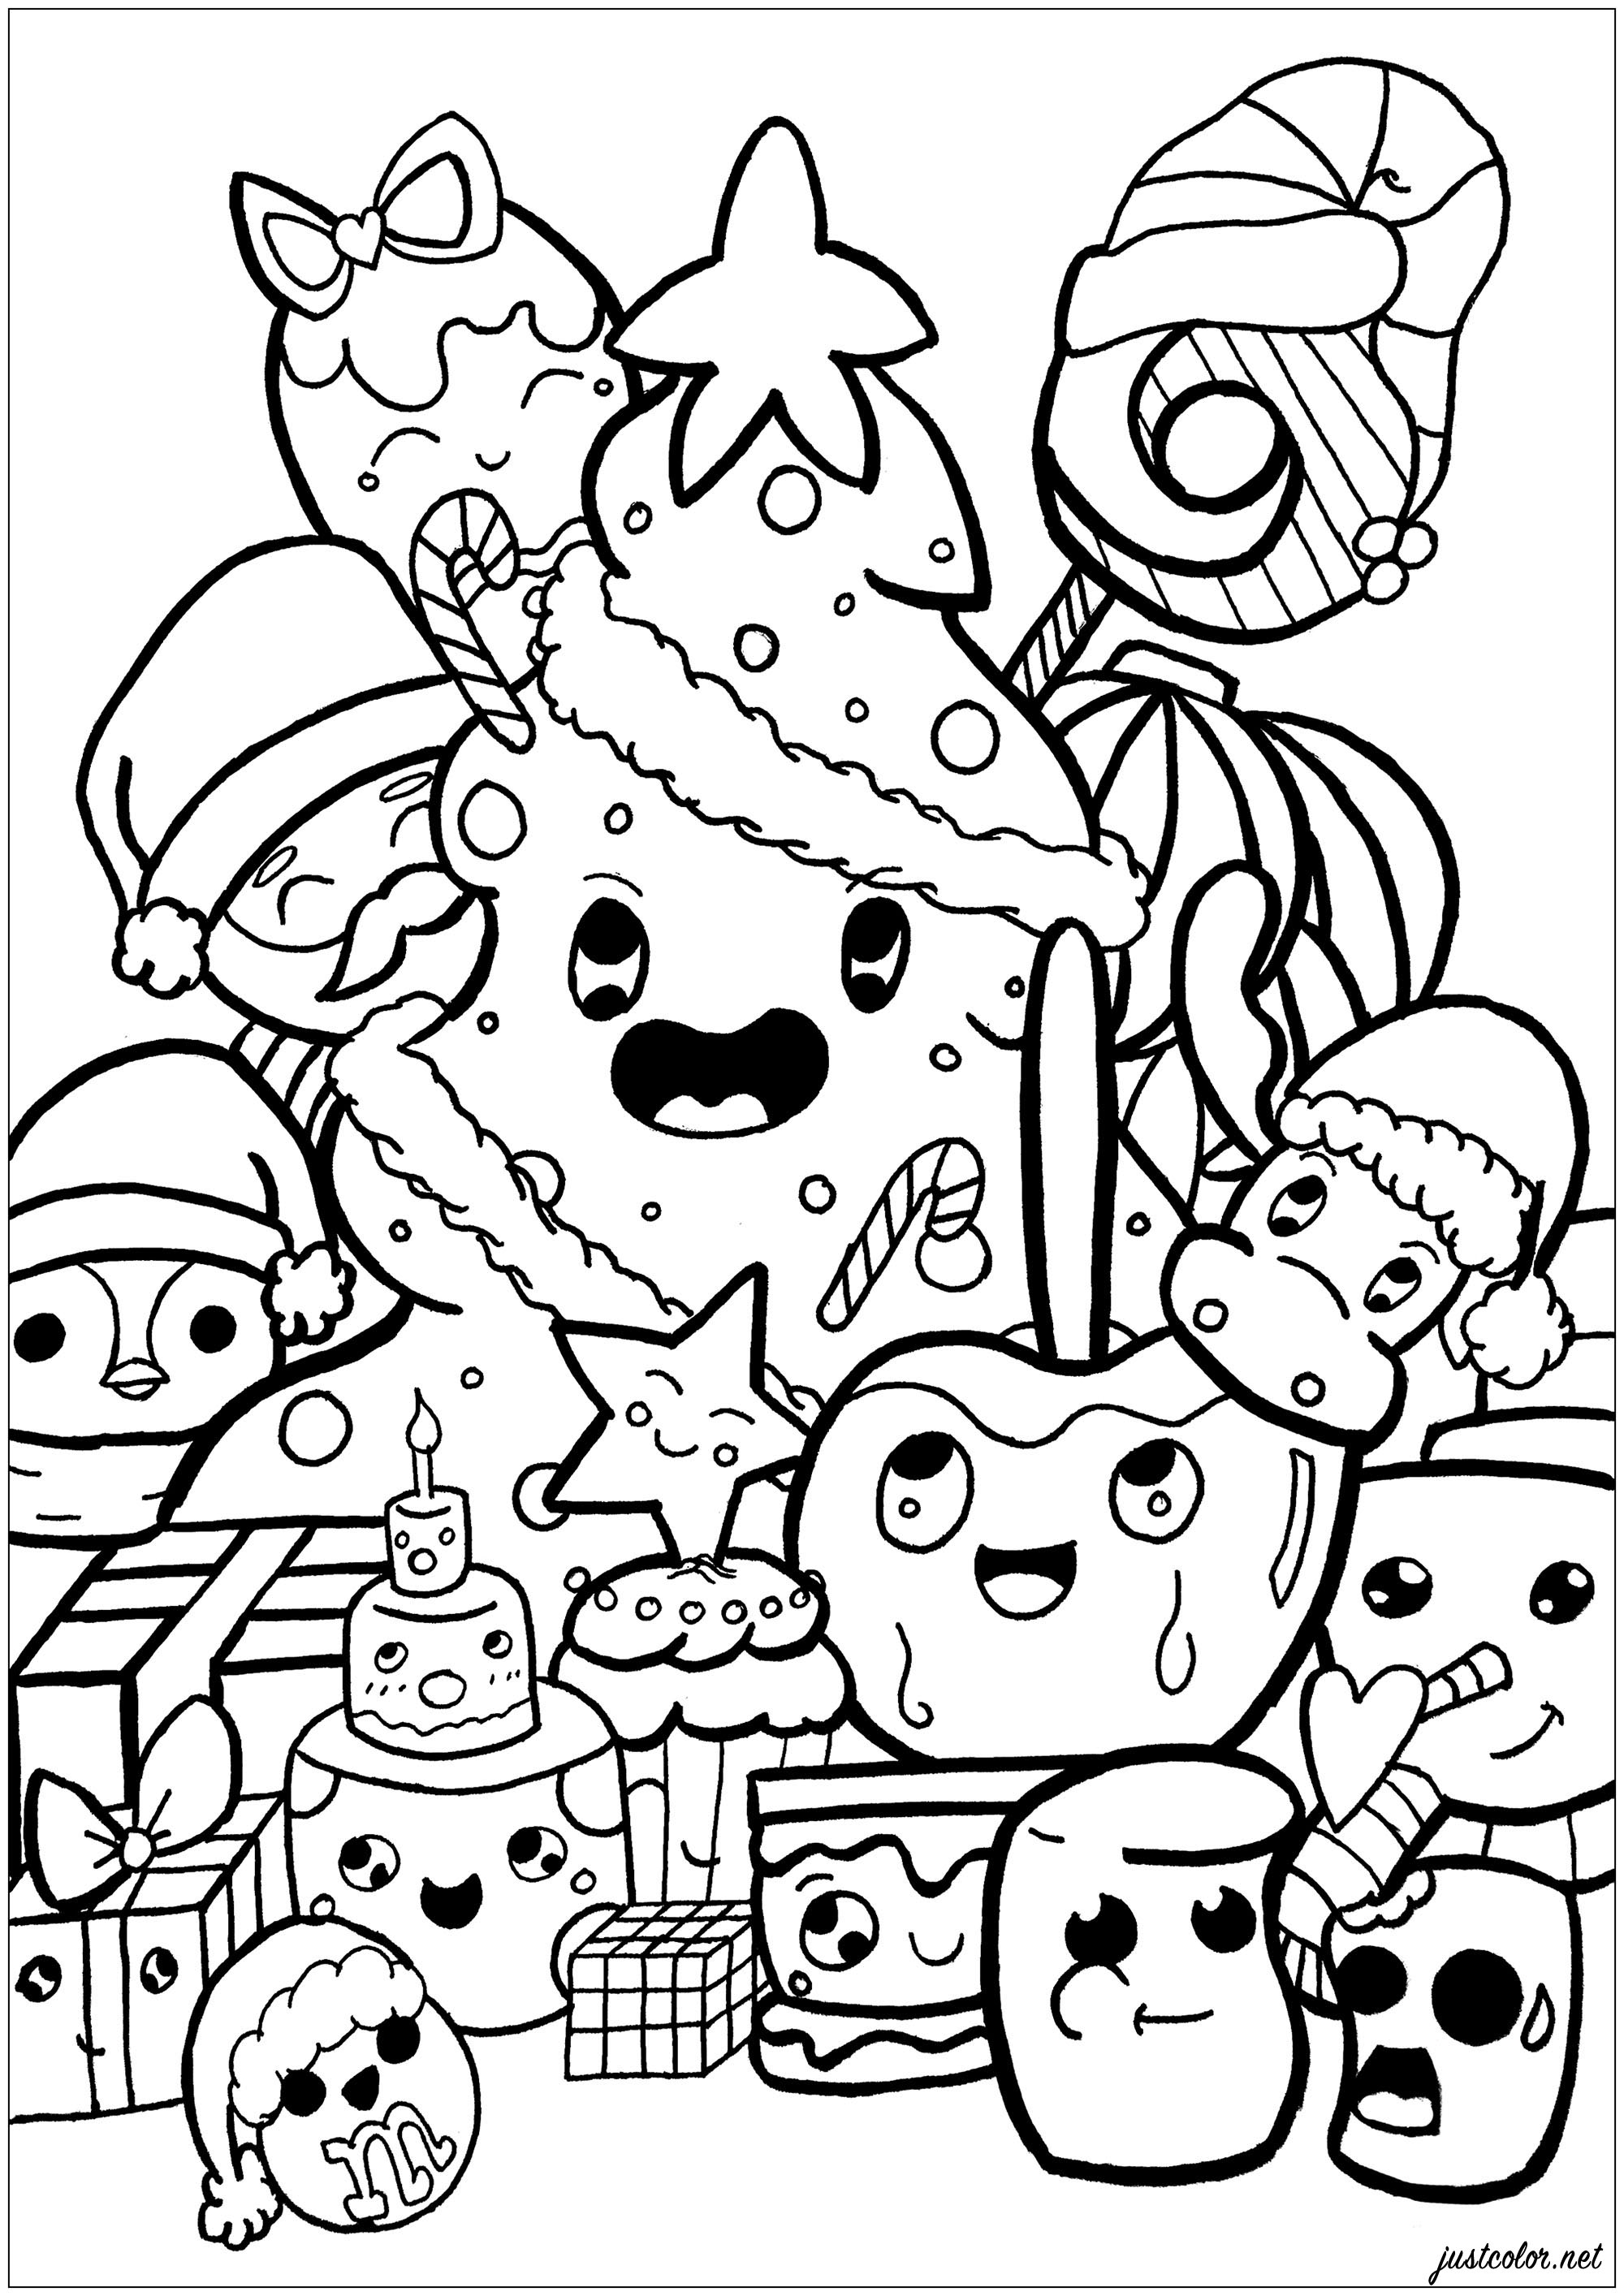 Printable Doodle Art Worksheets